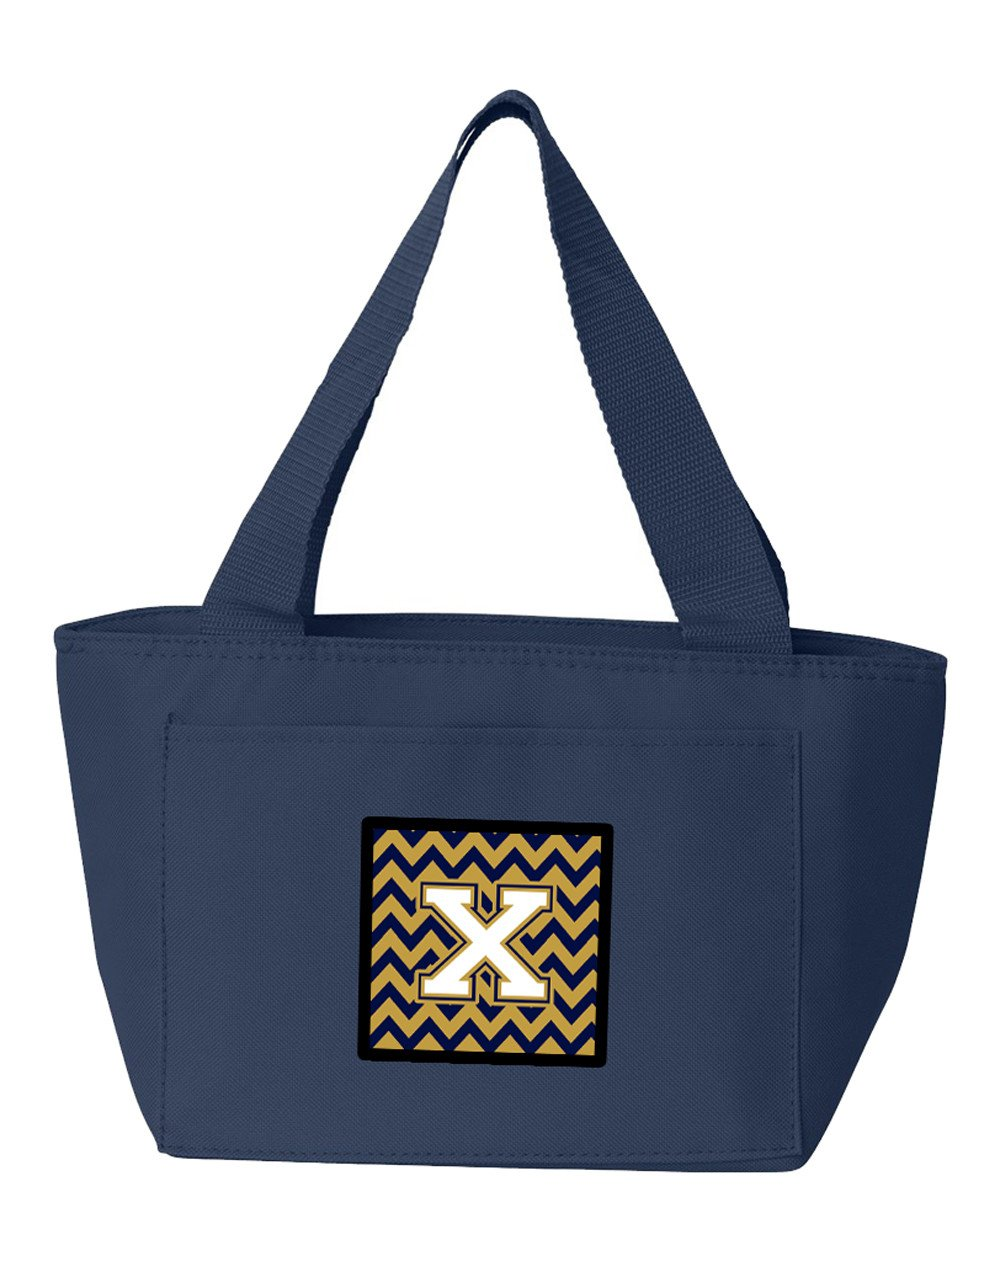 Letter X Chevron Navy Blue and Gold Lunch Bag CJ1057-XNA-8808 by Caroline's Treasures